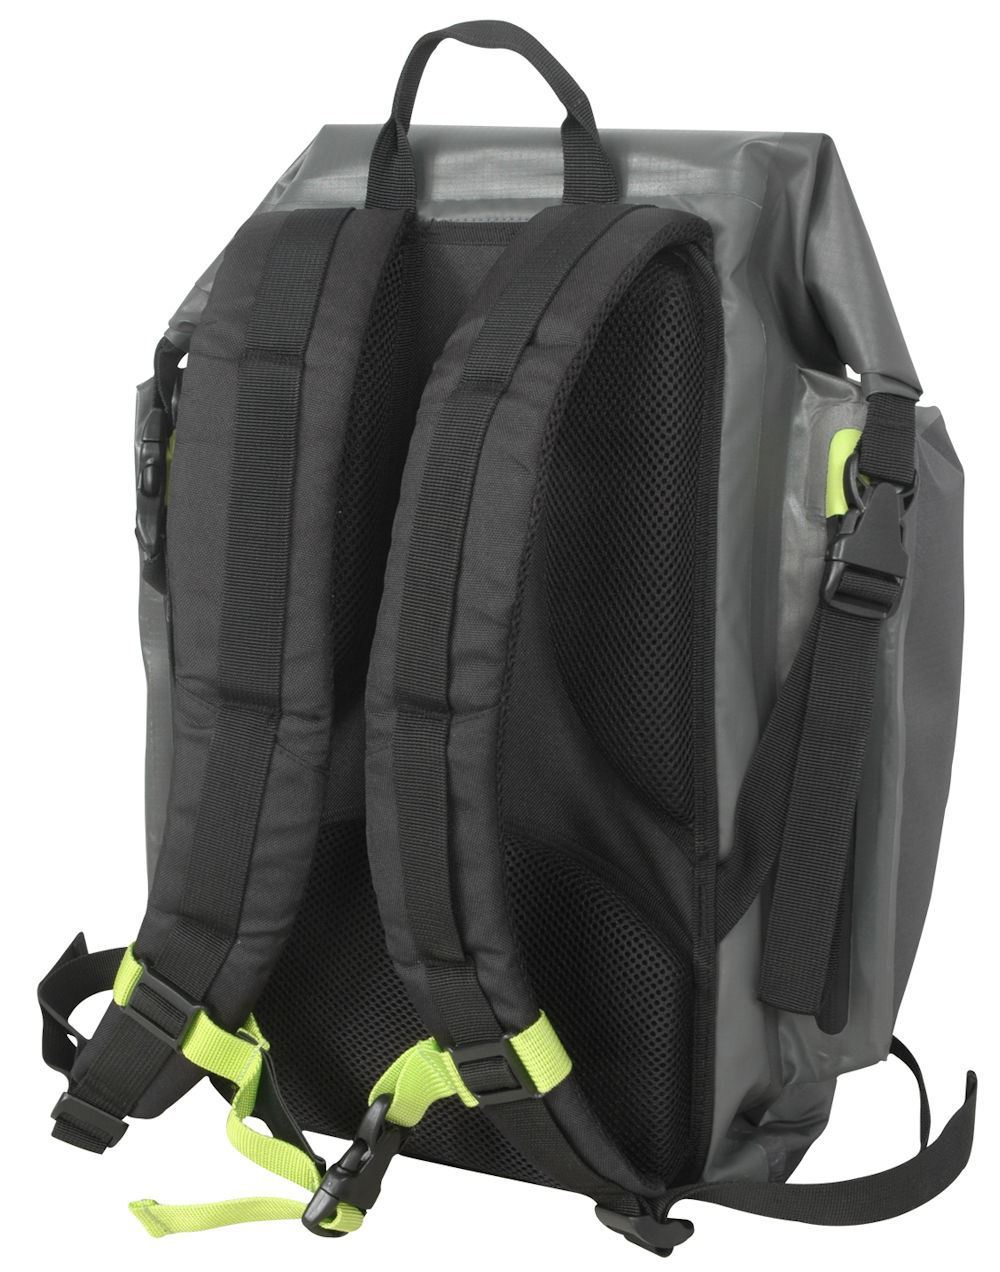 Aropec Surge Backpack - 35L Grey - reid outdoors